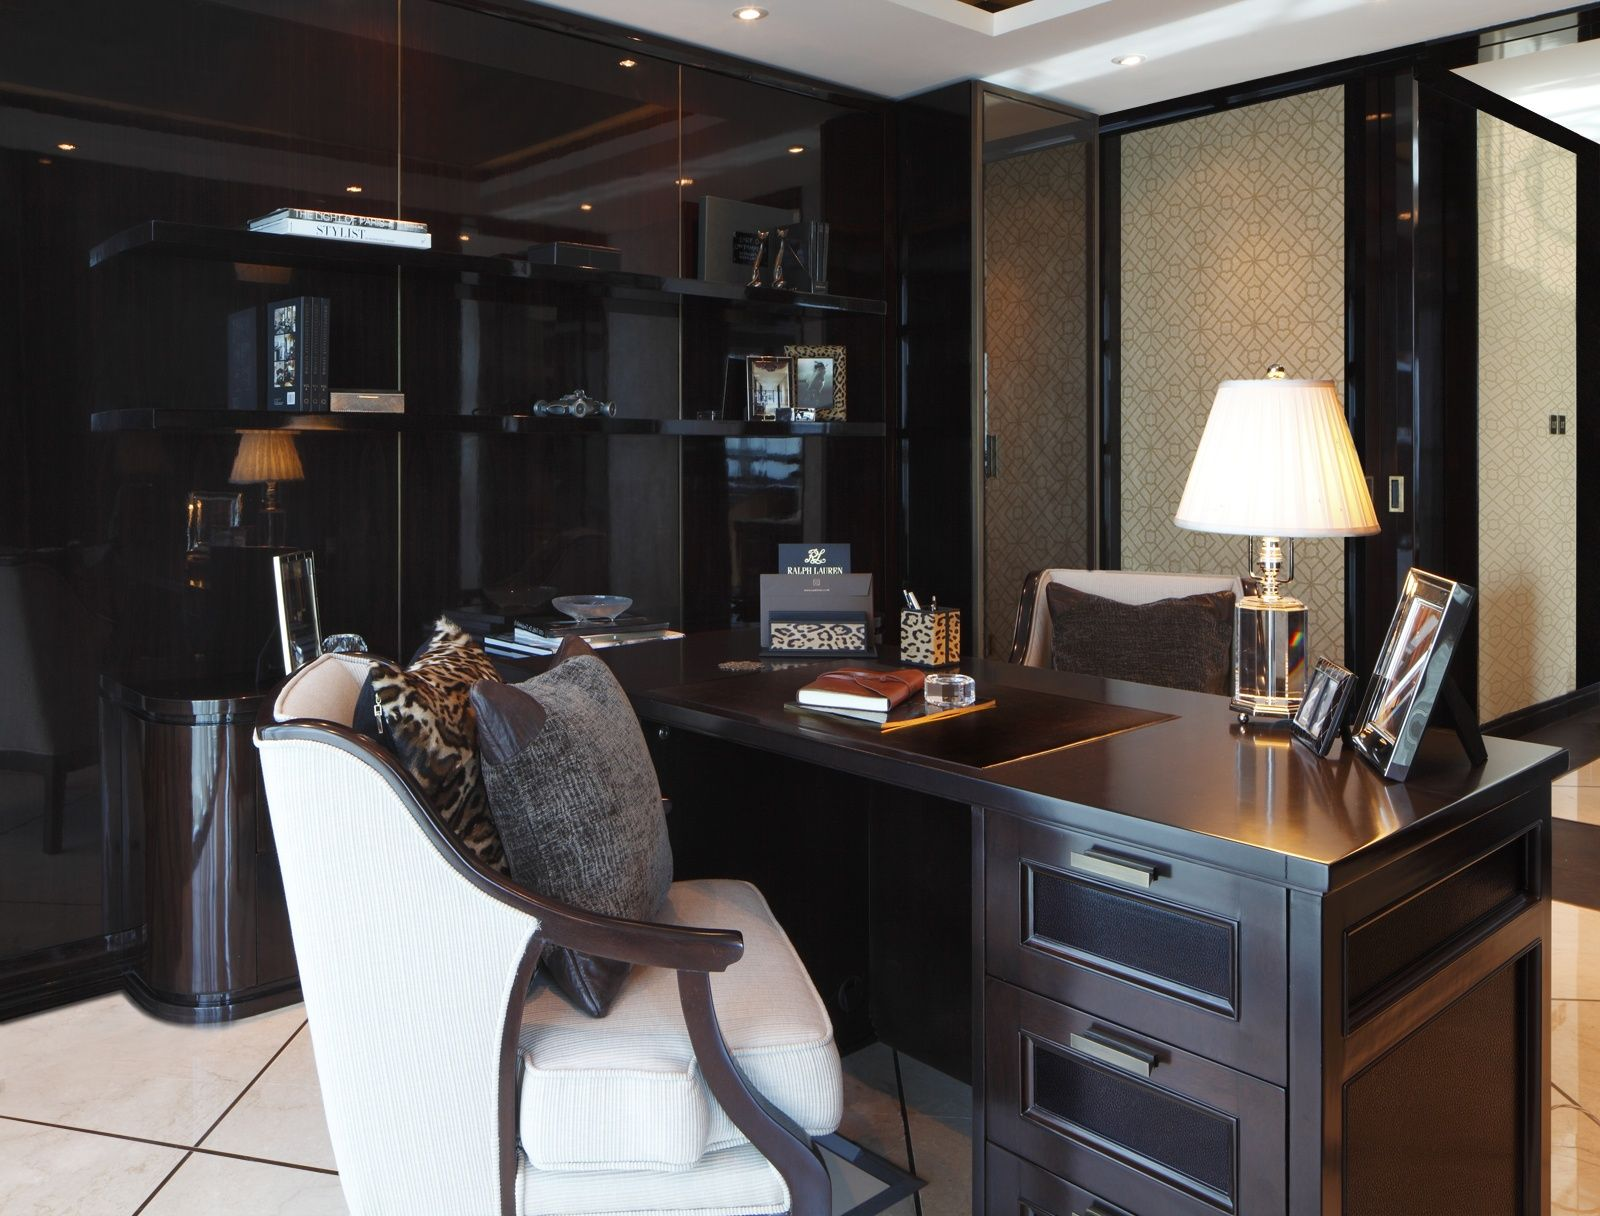 Dubai Office, Sheikh Za Road slide mobile image 3 | Study room ... on ultimate home heating systems, ultimate dream home, cutting edge home design, modern villa design, 3d home design, advanced home design,